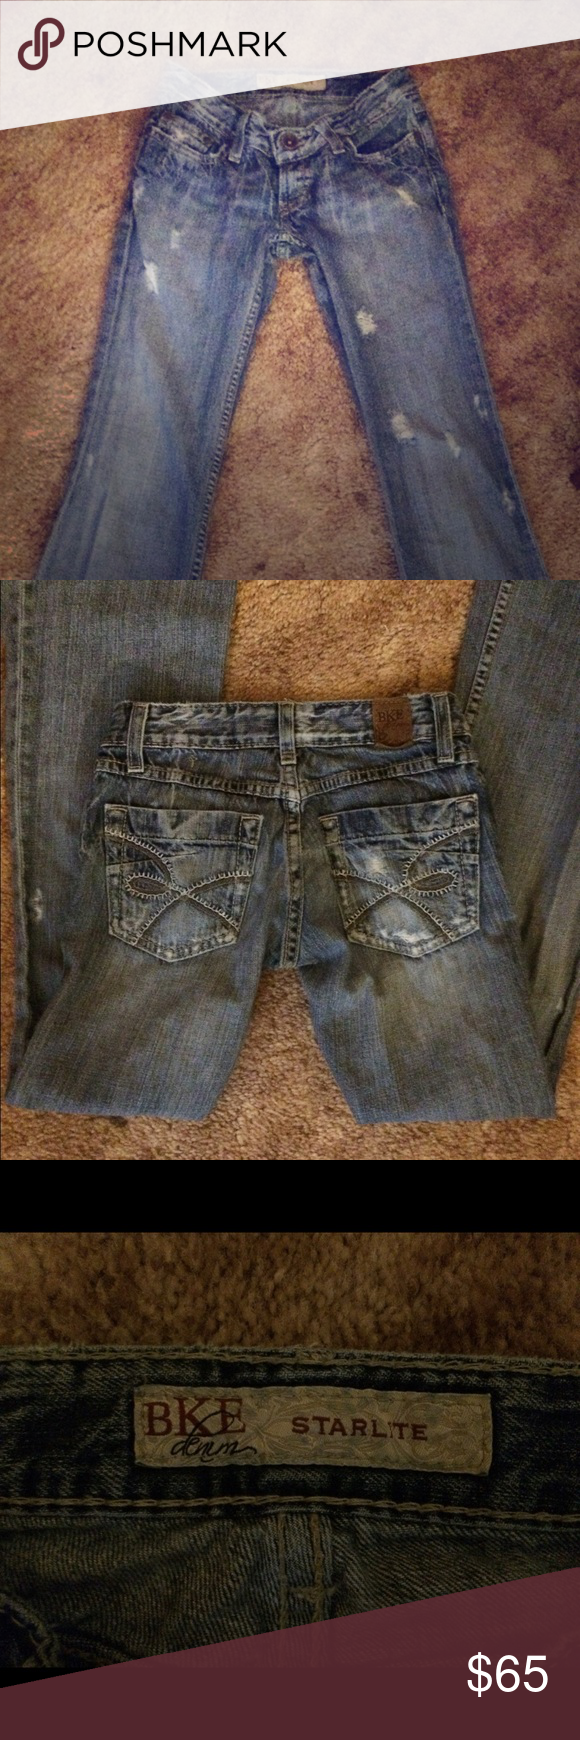 BKE Buckle Jeans Size 24x33 1/2 NWOT extremely comfy jeans! I bought two of the same that's why I'm letting one pair go Buckle Pants Boot Cut & Flare